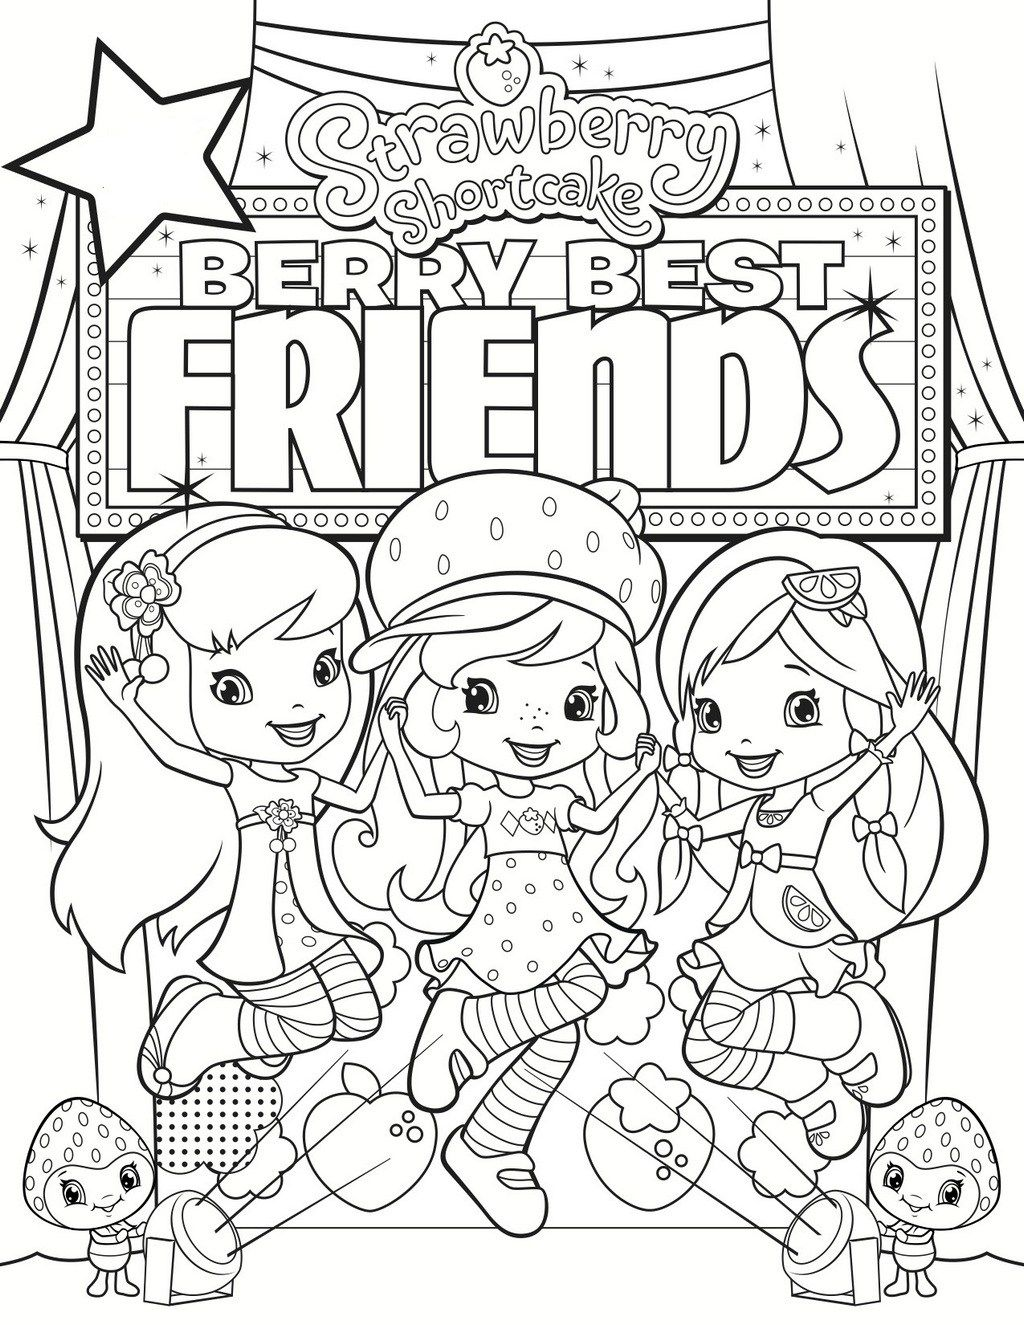 Berry Best Friends Coloring Page Printable | animated series ...